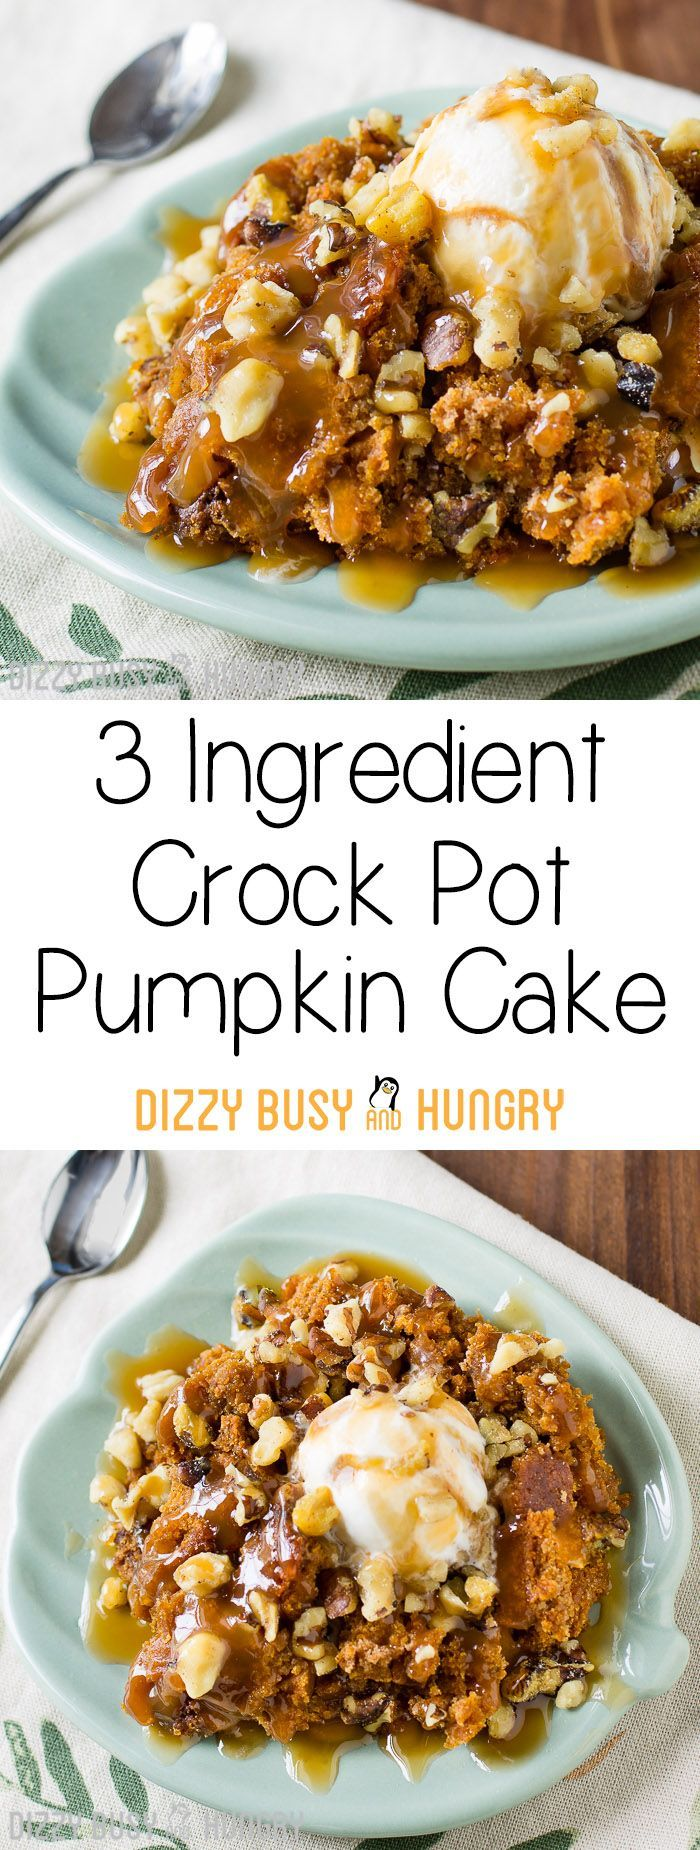 3 Ingredient Crock Pot Pumpkin Cake   DizzyBusyandHungry.com - Sweet treats don't get any easier than this! Serve warm, and top it with caramel sauce, chopped walnuts, and vanilla ice cream, and you have a dessert to die for!